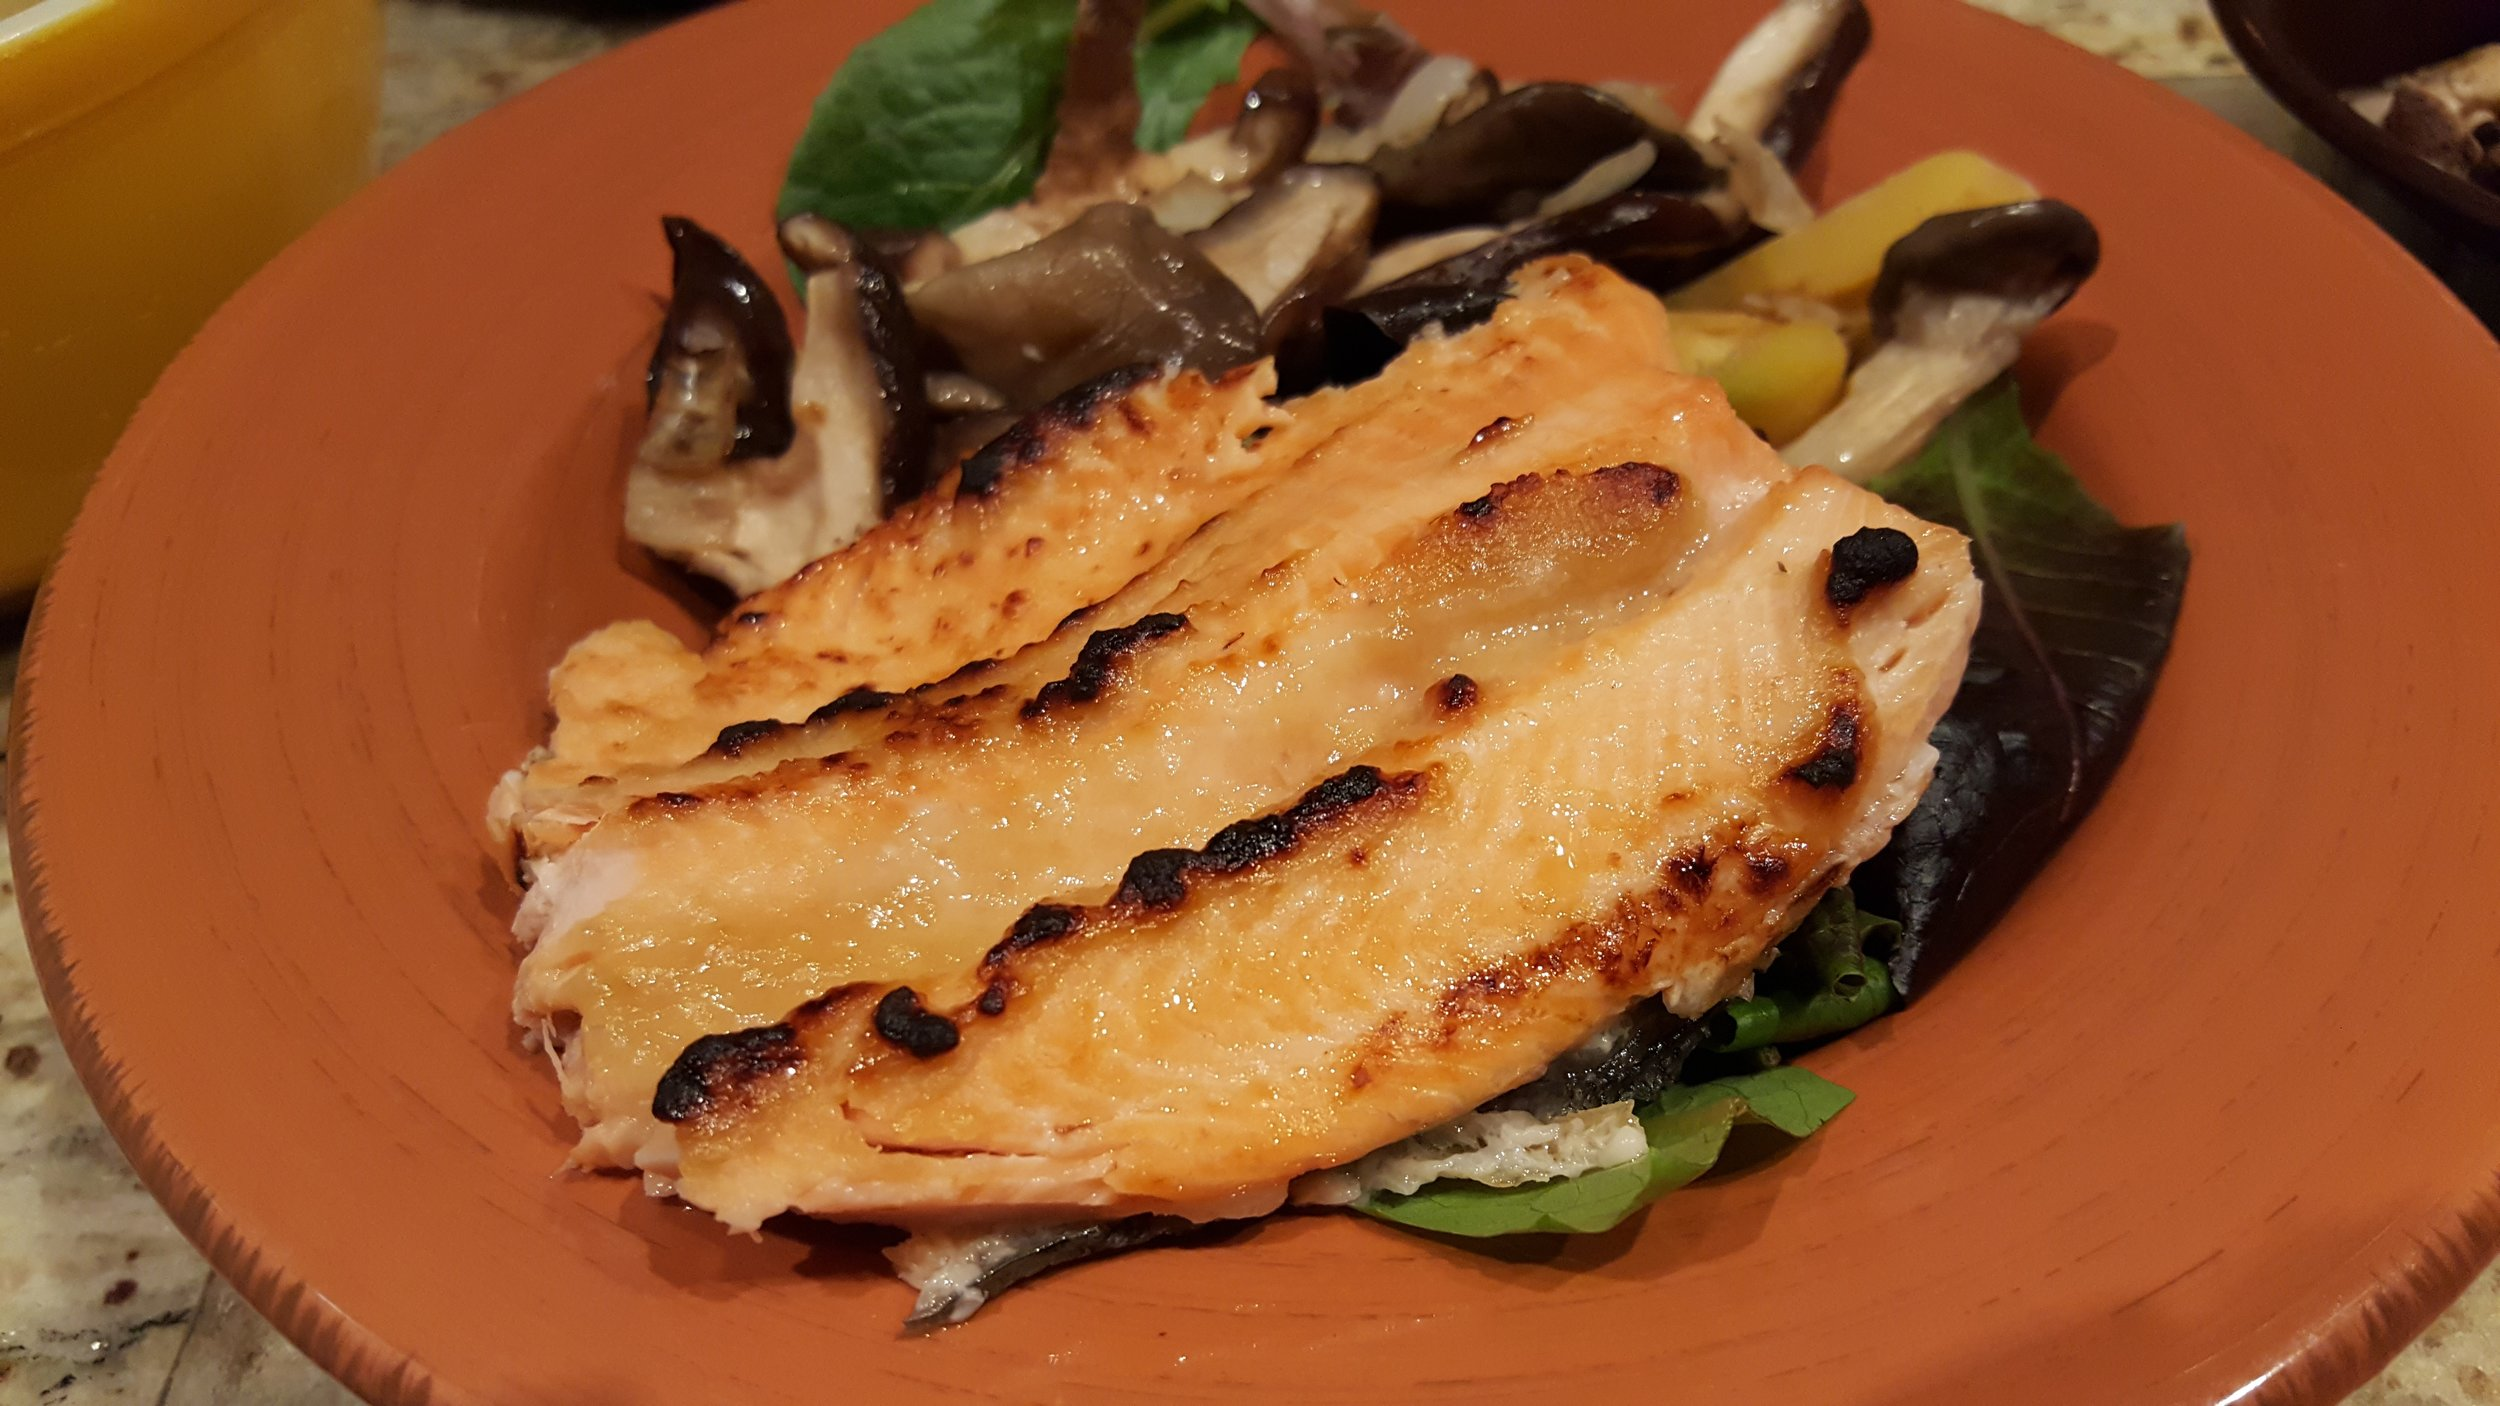 Miso glazed trout over bed of greens- SO GOOD!